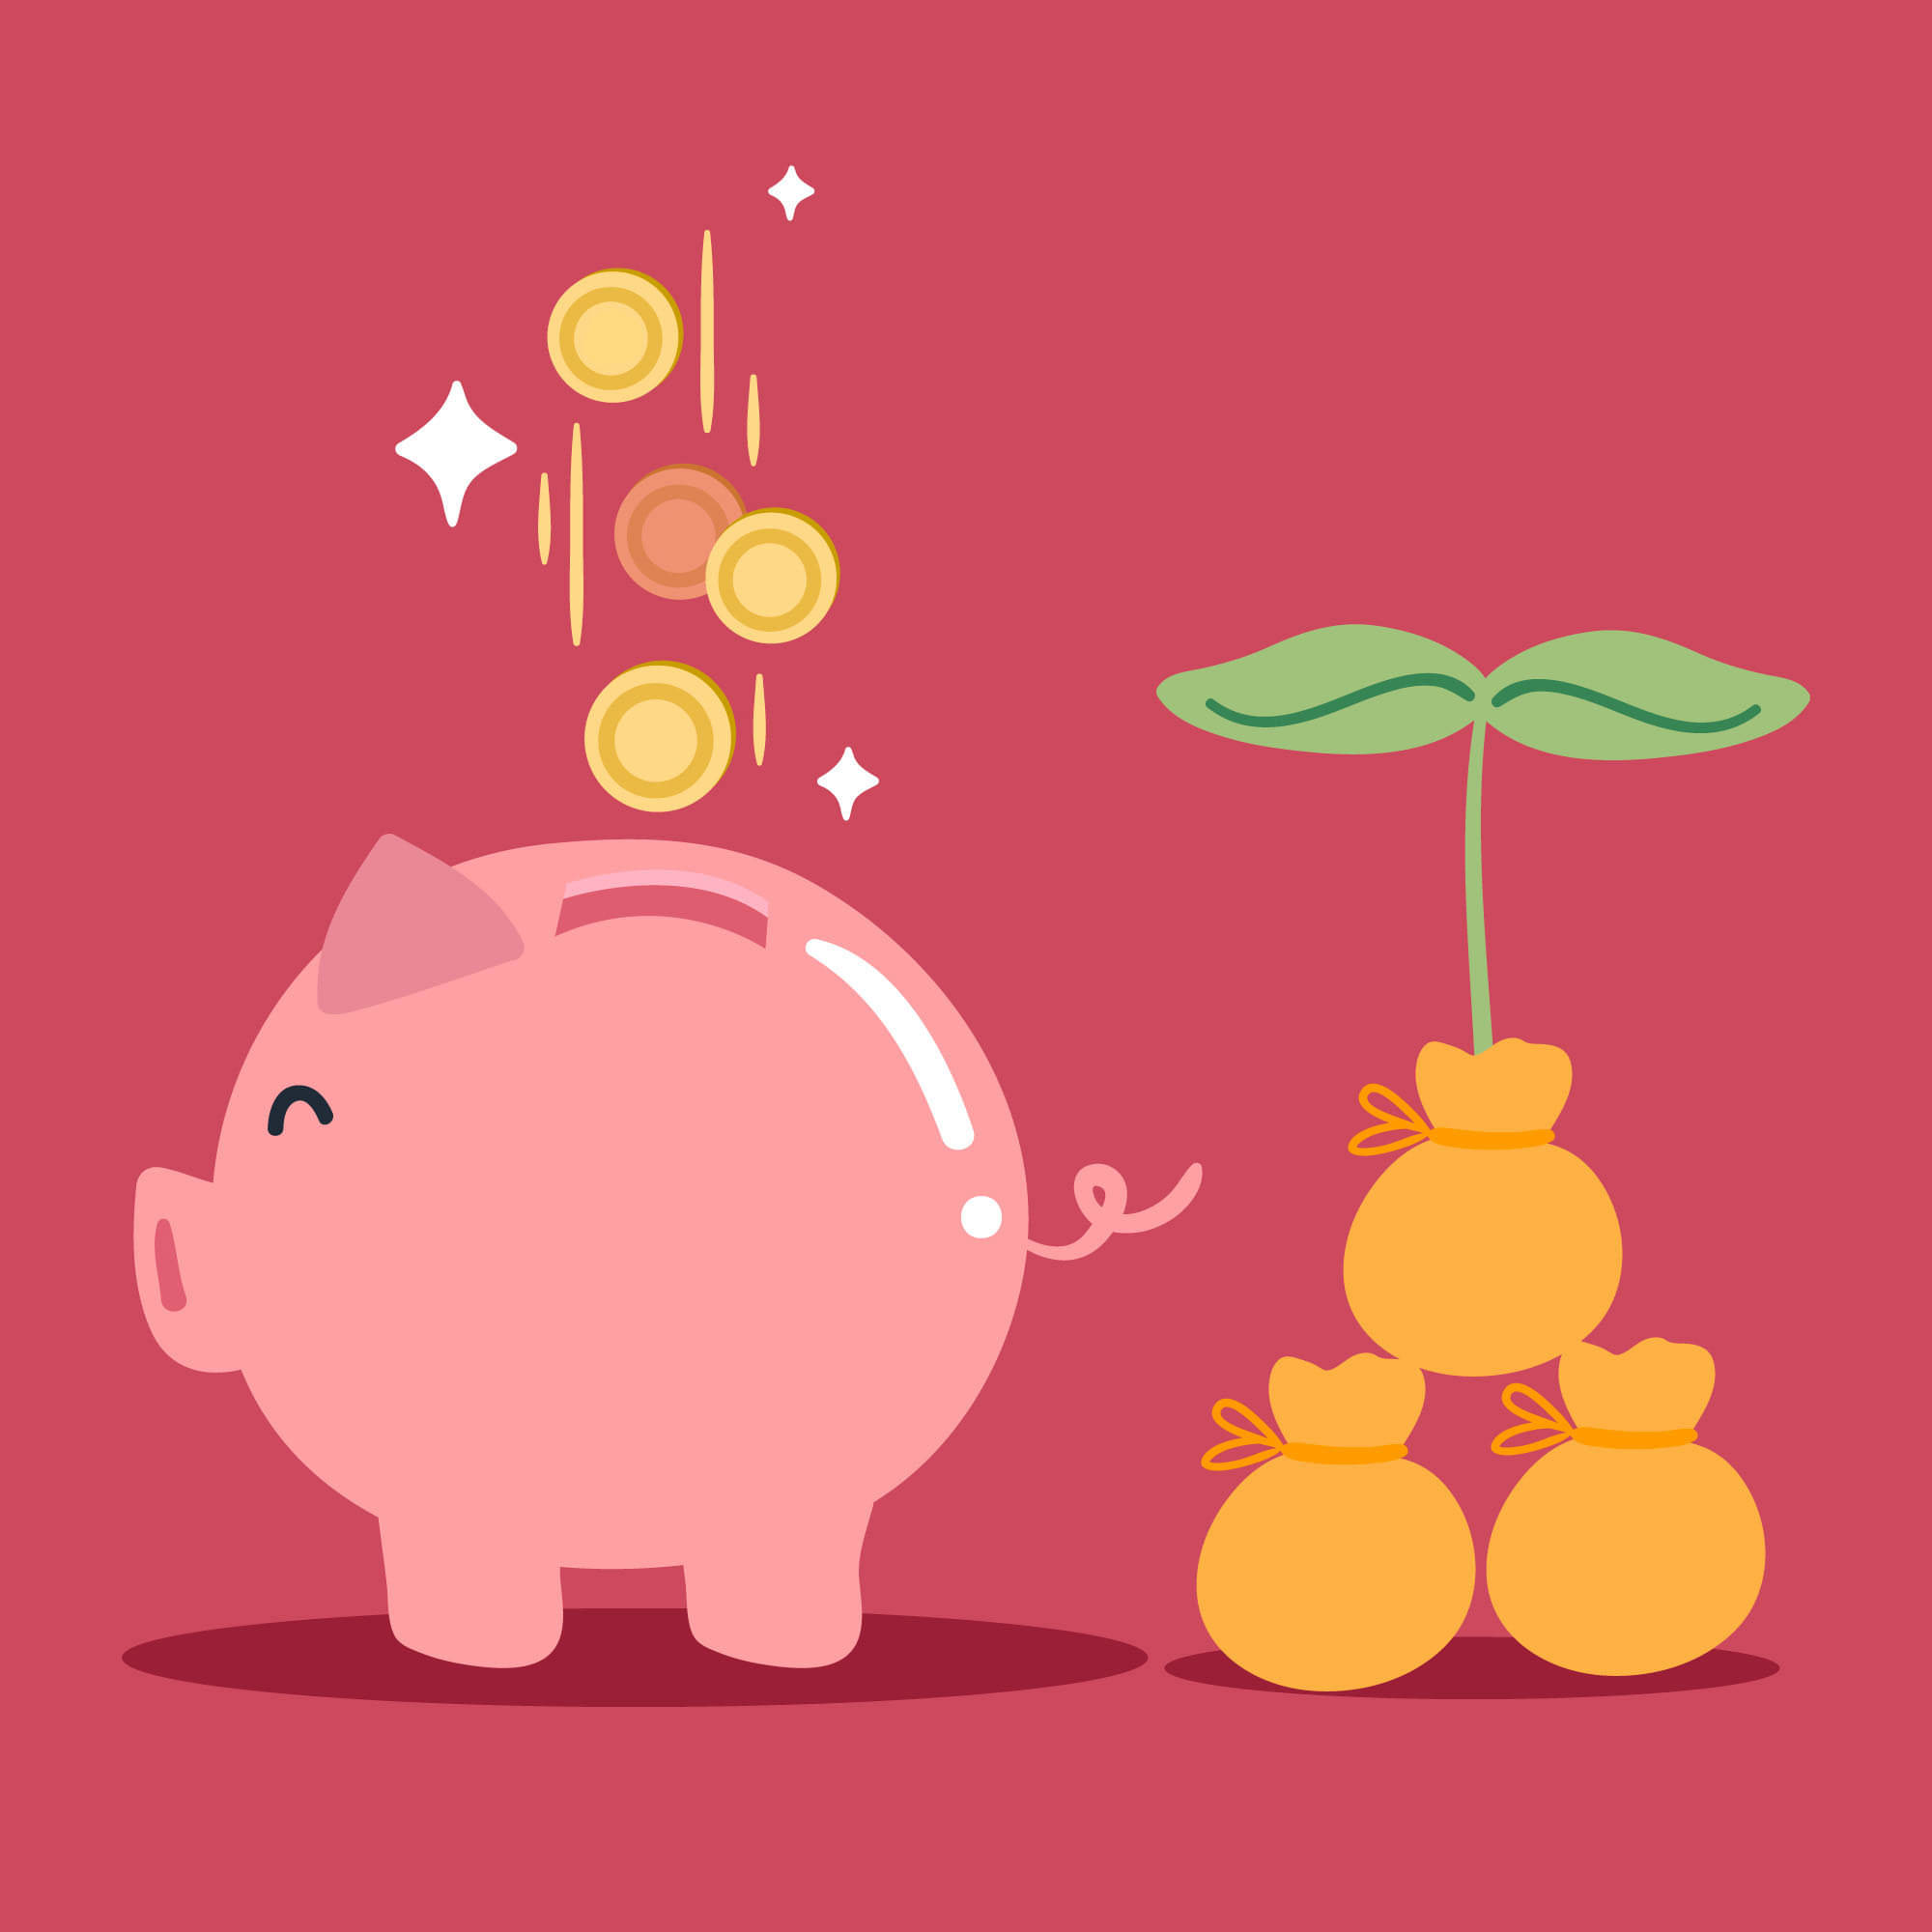 Post Office Small Savings schemes offering higher interest rate than bank fixed deposits: Choose as per your goal